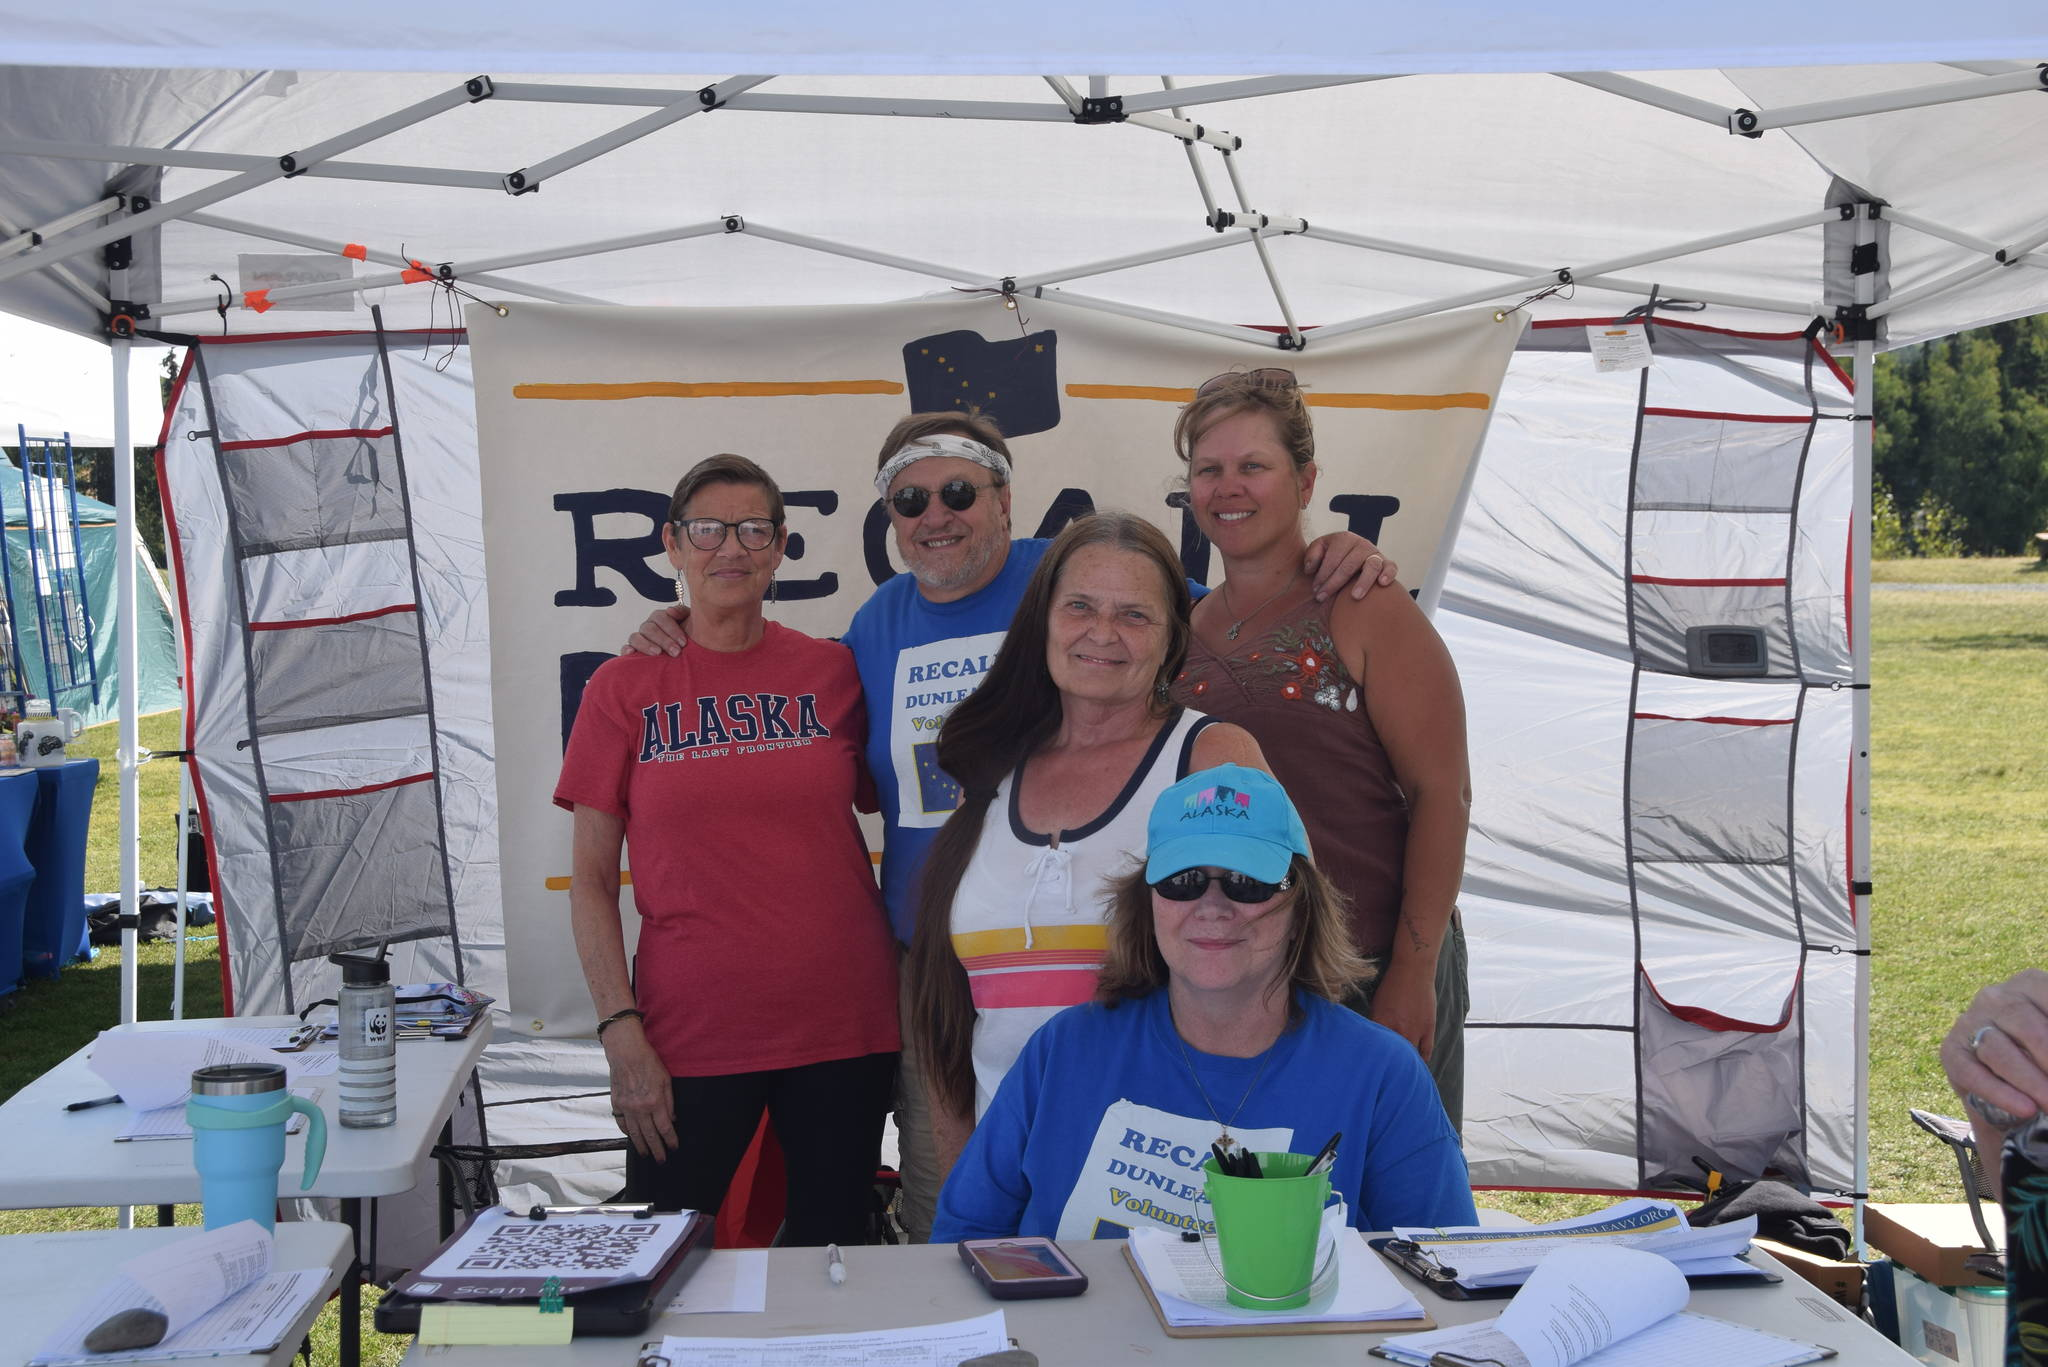 From left, Michele Vasquez, Eric Trieder, Fay Herold, Nelma Treider and Karyn Griffin smile for a photo while collecting signatures to recall Governor Mike Dunleavy in Soldotna Creek Park on Aug. 7, 2019. (Photo by Brian Mazurek/Peninsula Clarion)